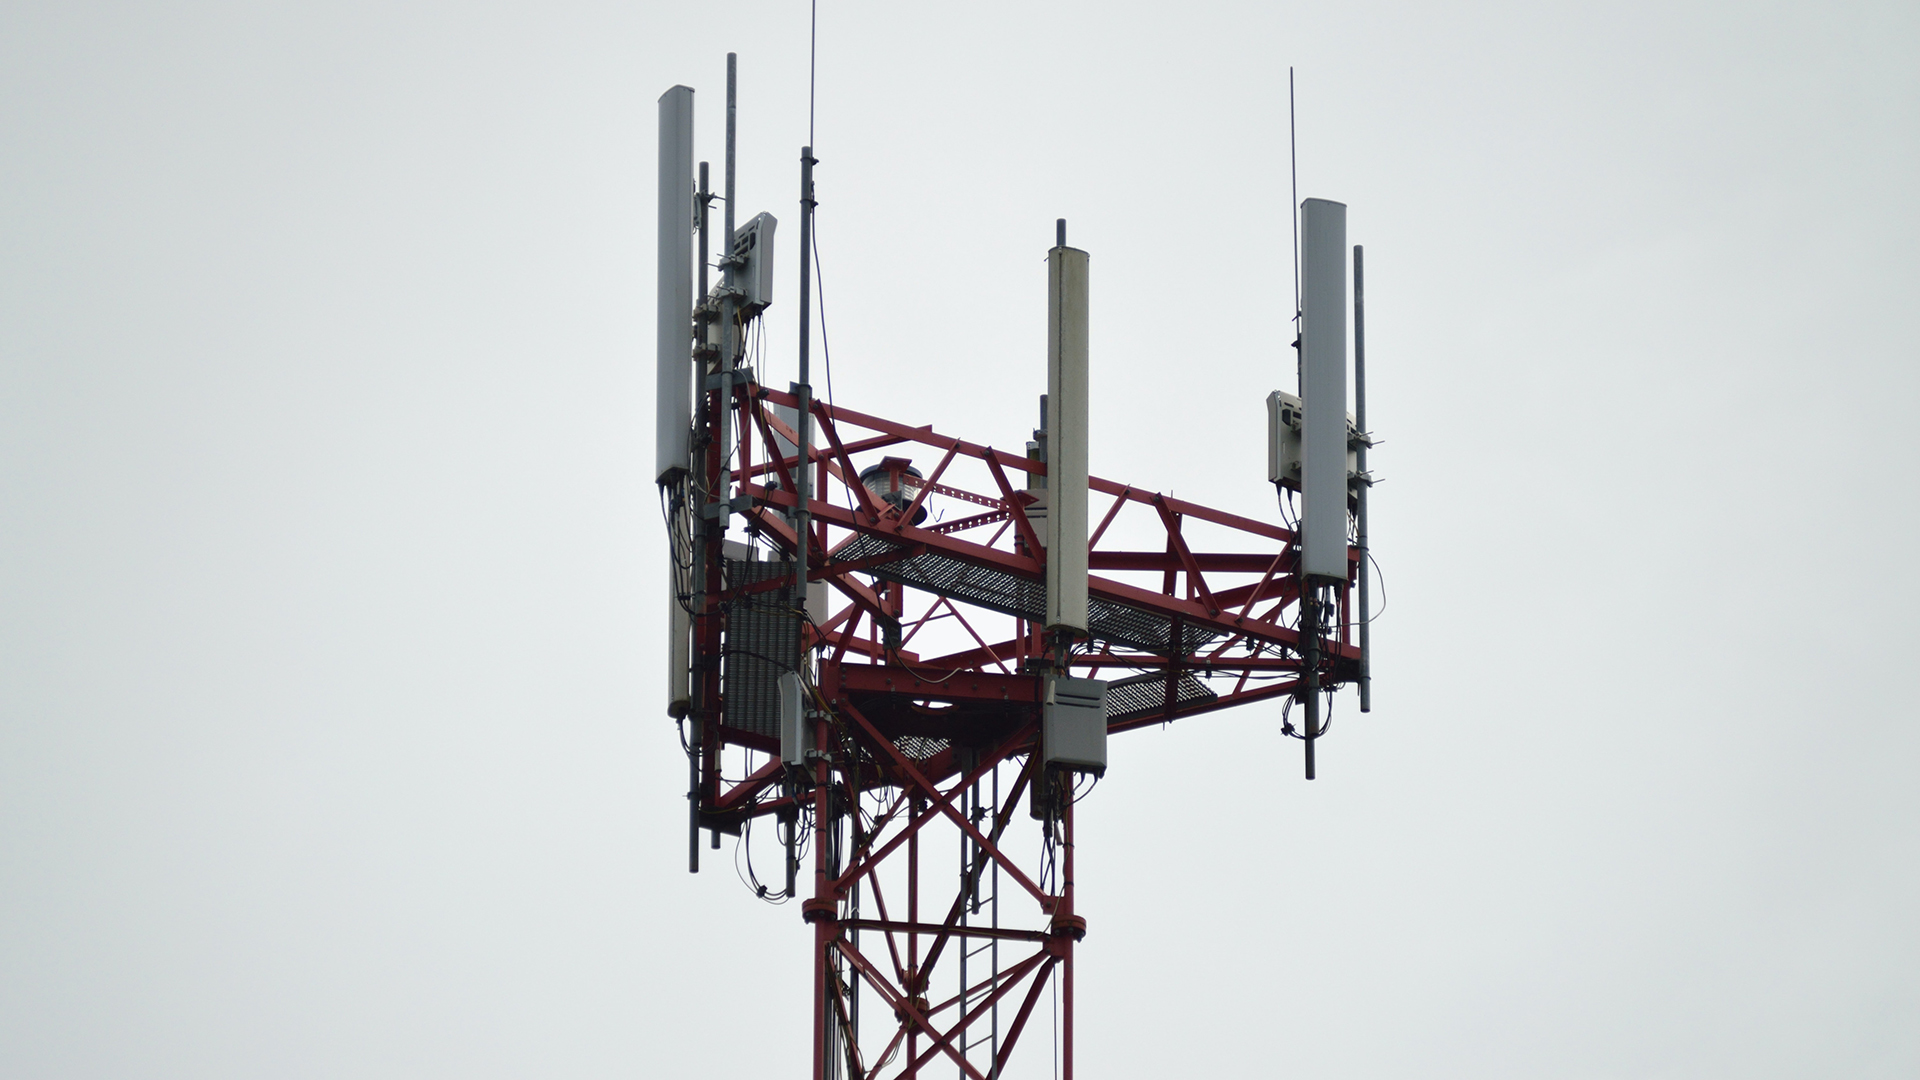 Production-linked Incentive Scheme A Signal Boost For Telecom Sector: Indian Rating Agency